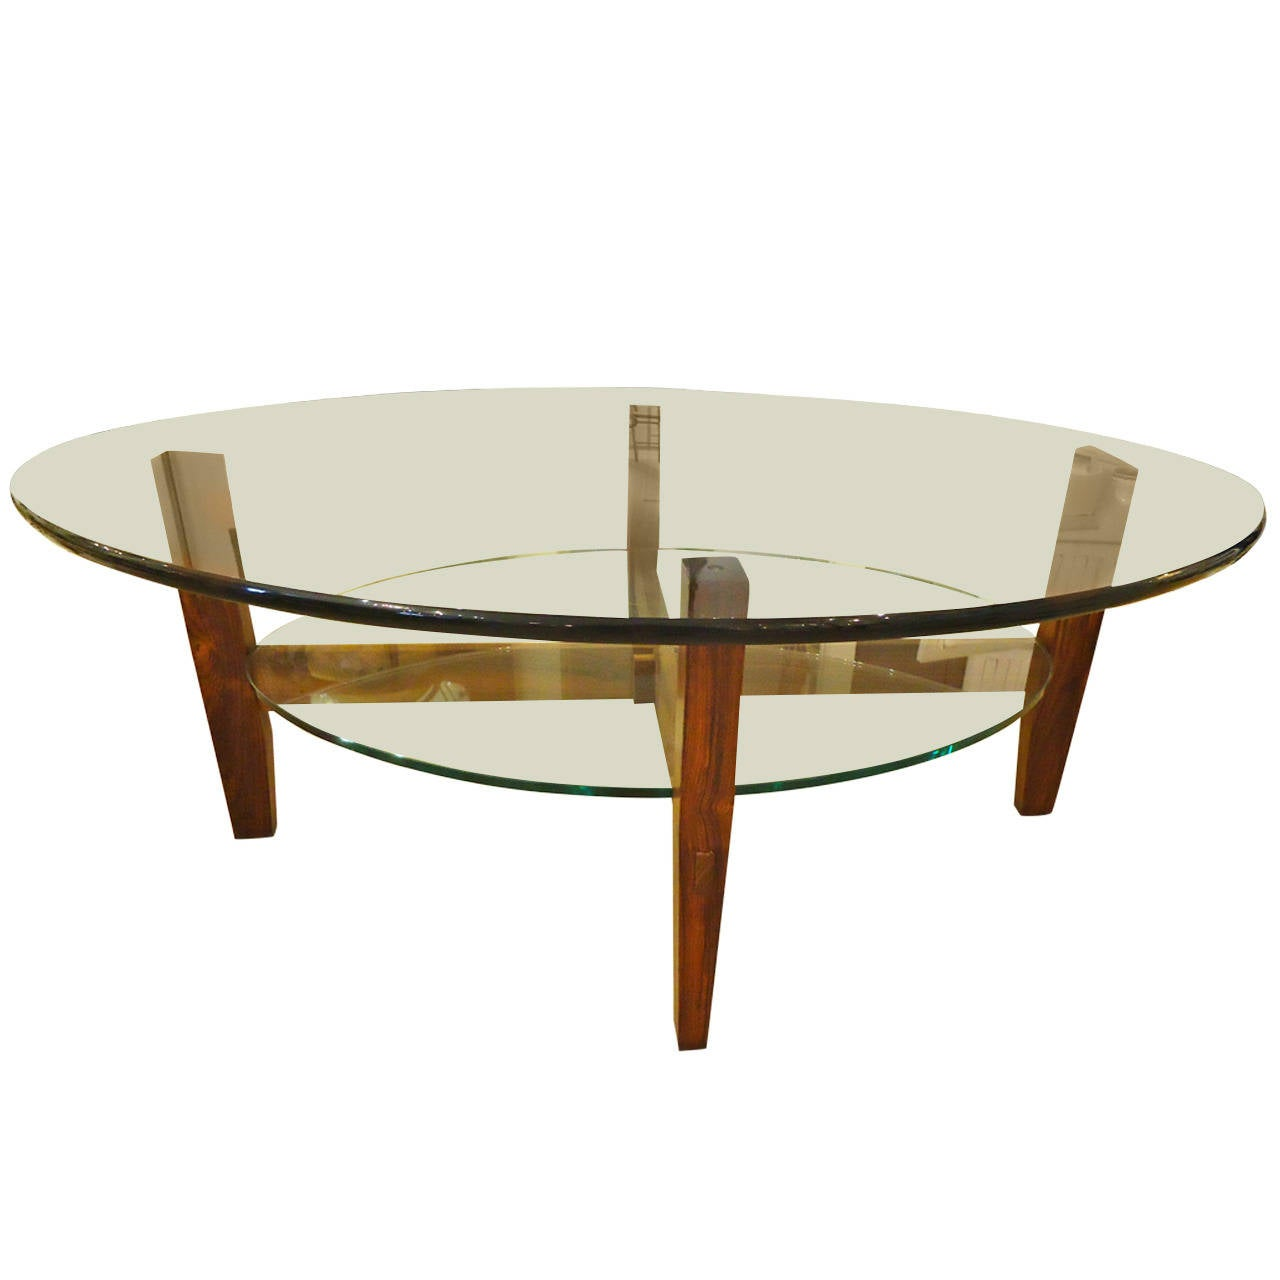 Two tier rosewood and oval glass coffee cocktail table for sale at 1stdibs Glass oval coffee tables